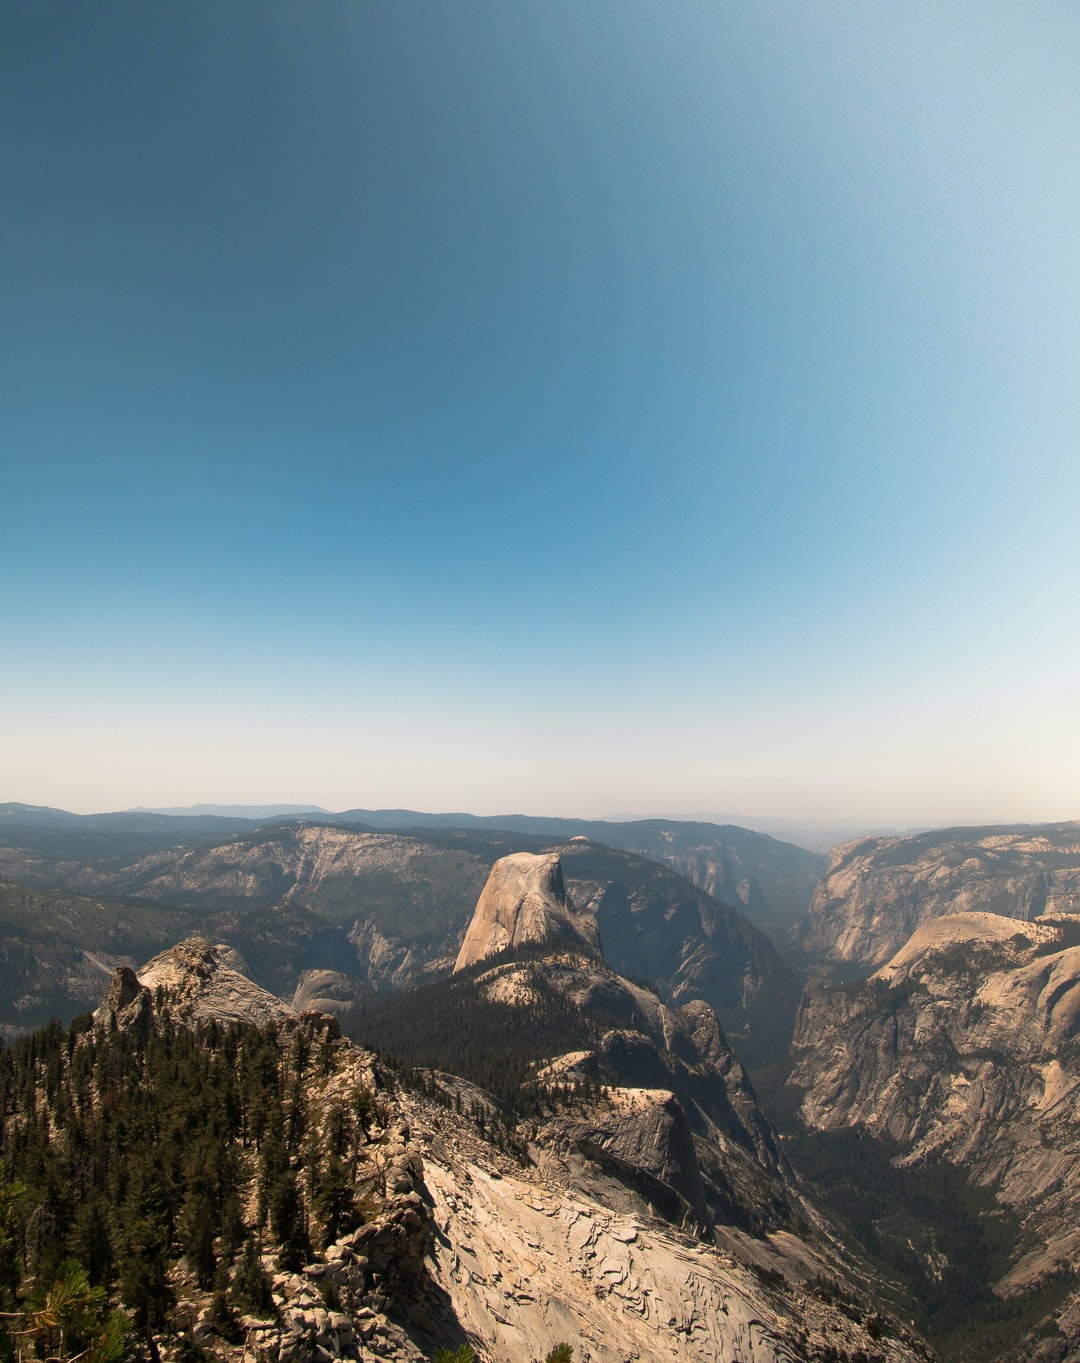 https://www.instagram.com/francistogram/ View of Half Dome from the top of Clouds Rest